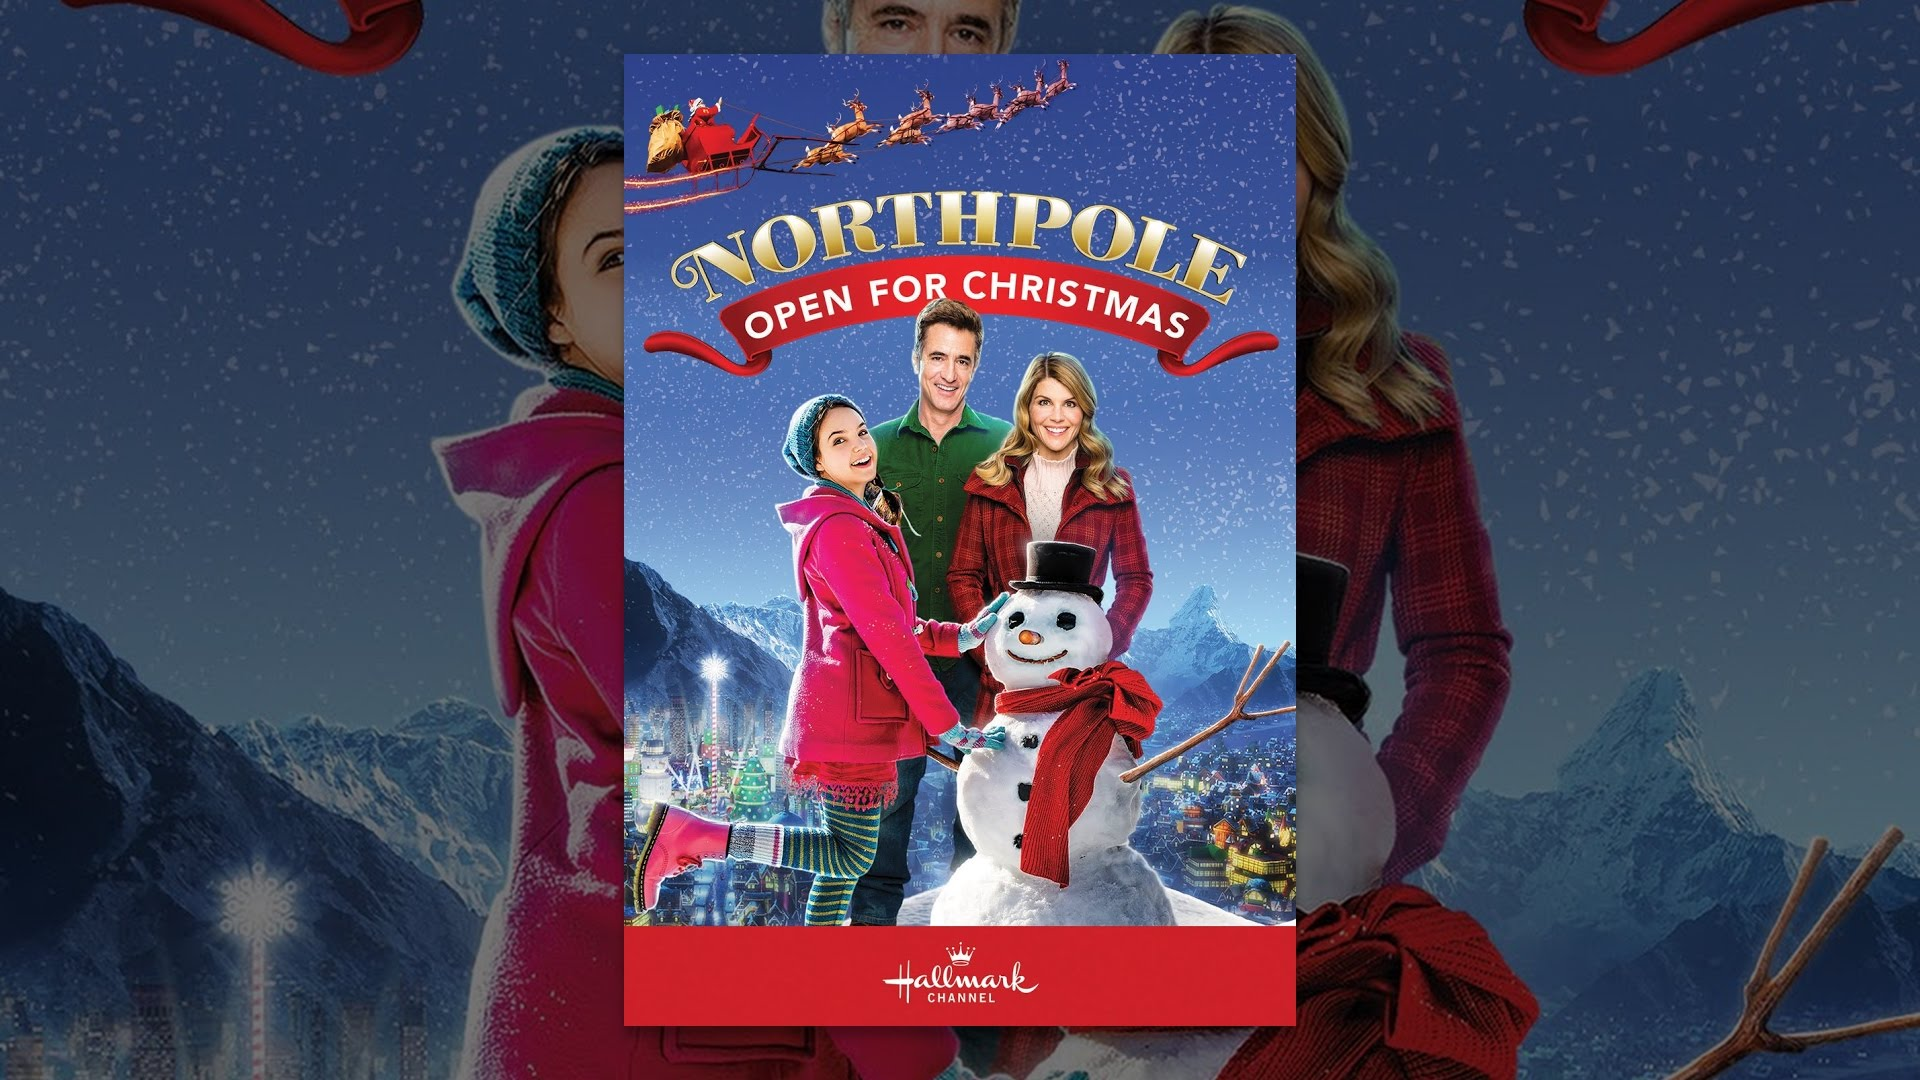 Northpole: Open for Christmas - YouTube